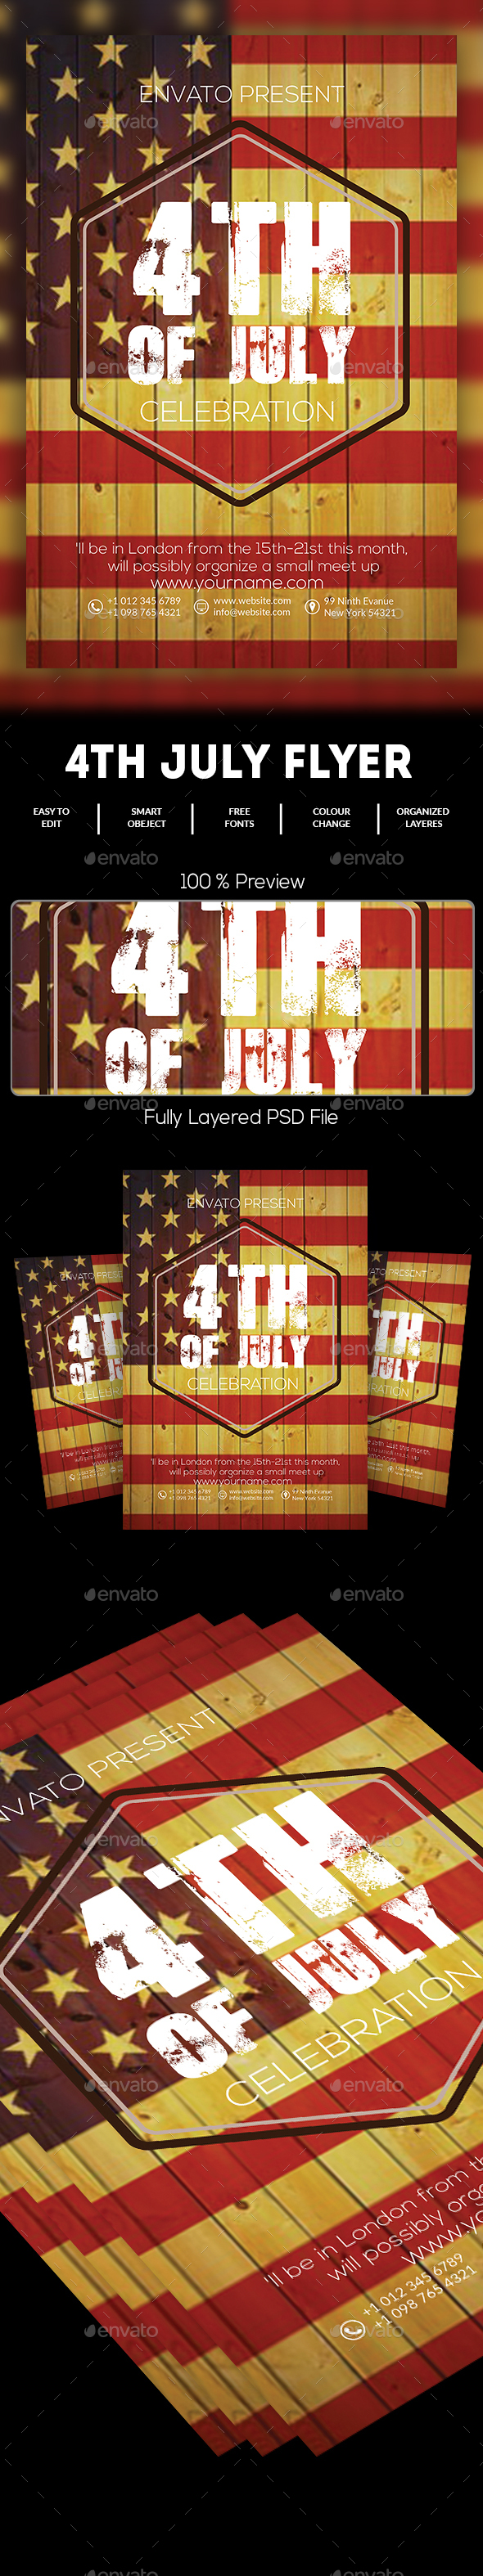 4th of july menu template - 4th july flyer template by dhingra graphicriver